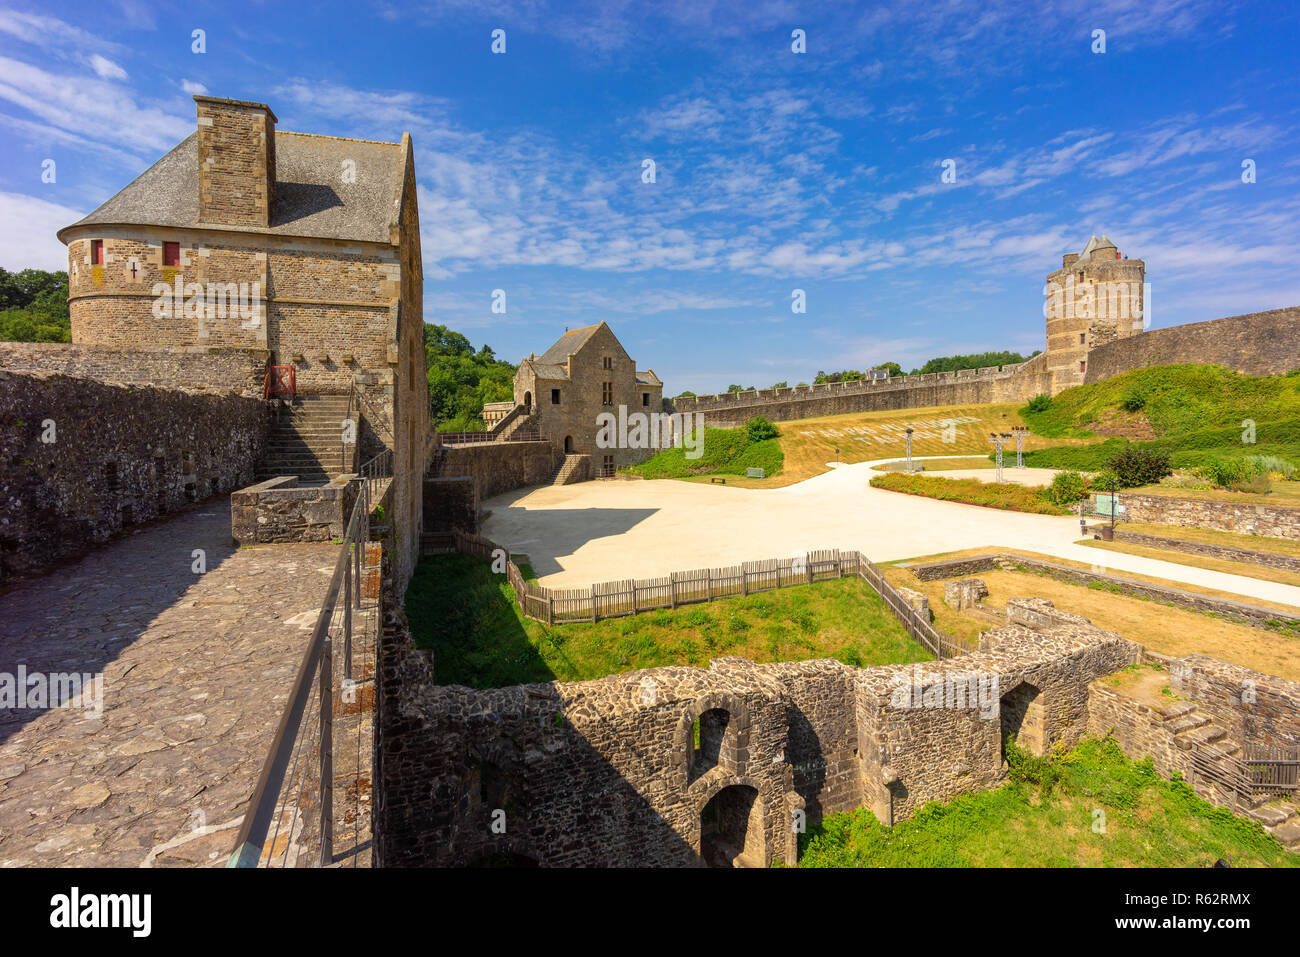 Fougeres castle in Bretagne, France. Stock Photo